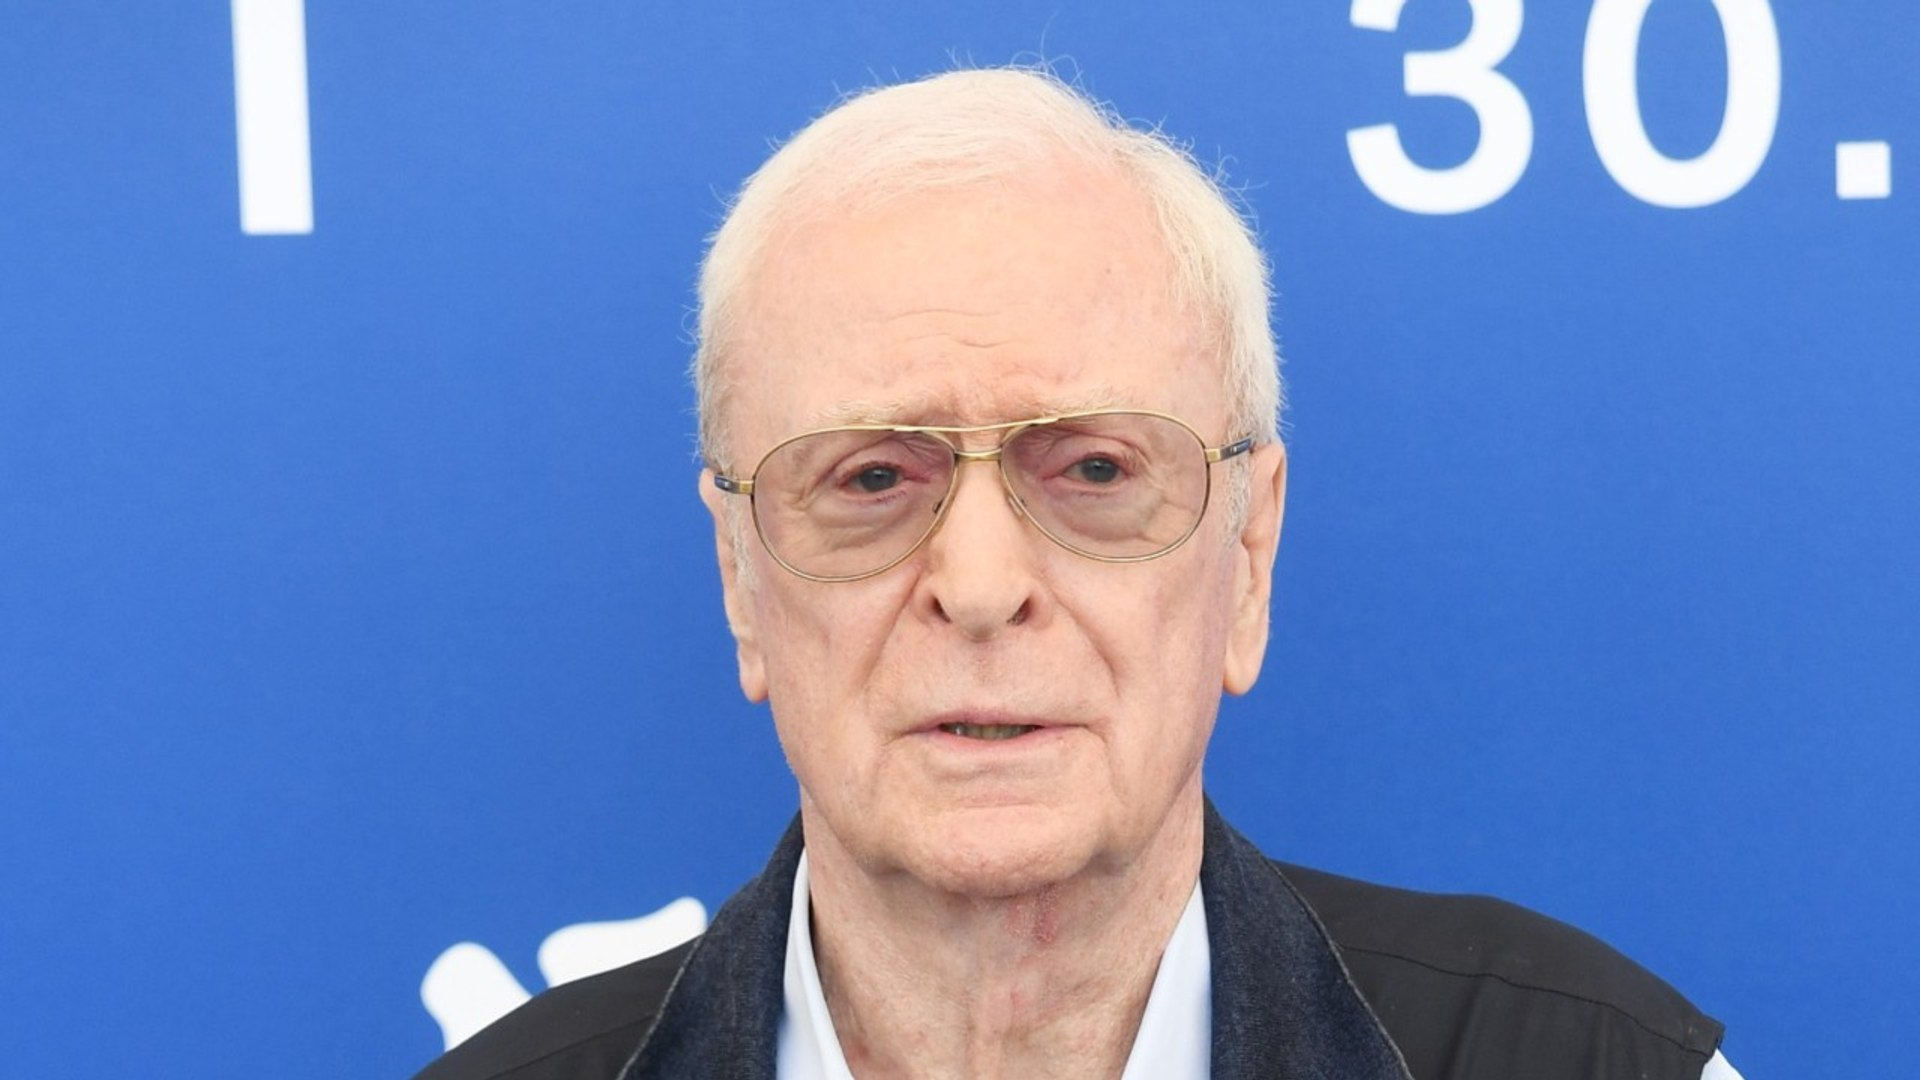 Michael Caine Discusses Support for 'Brexit'